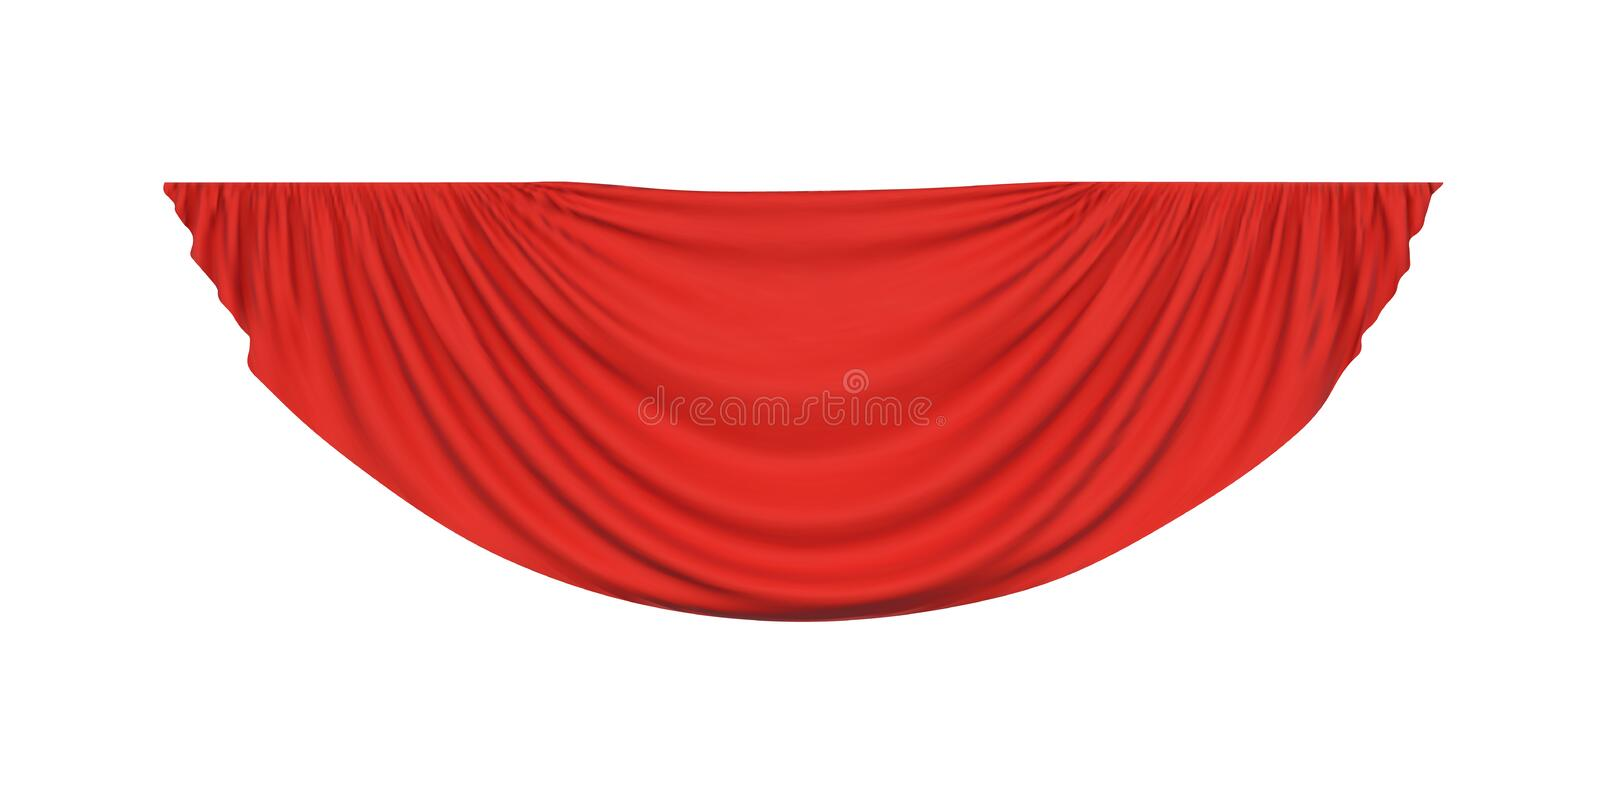 Red pelmet drapery curtain royalty free illustration